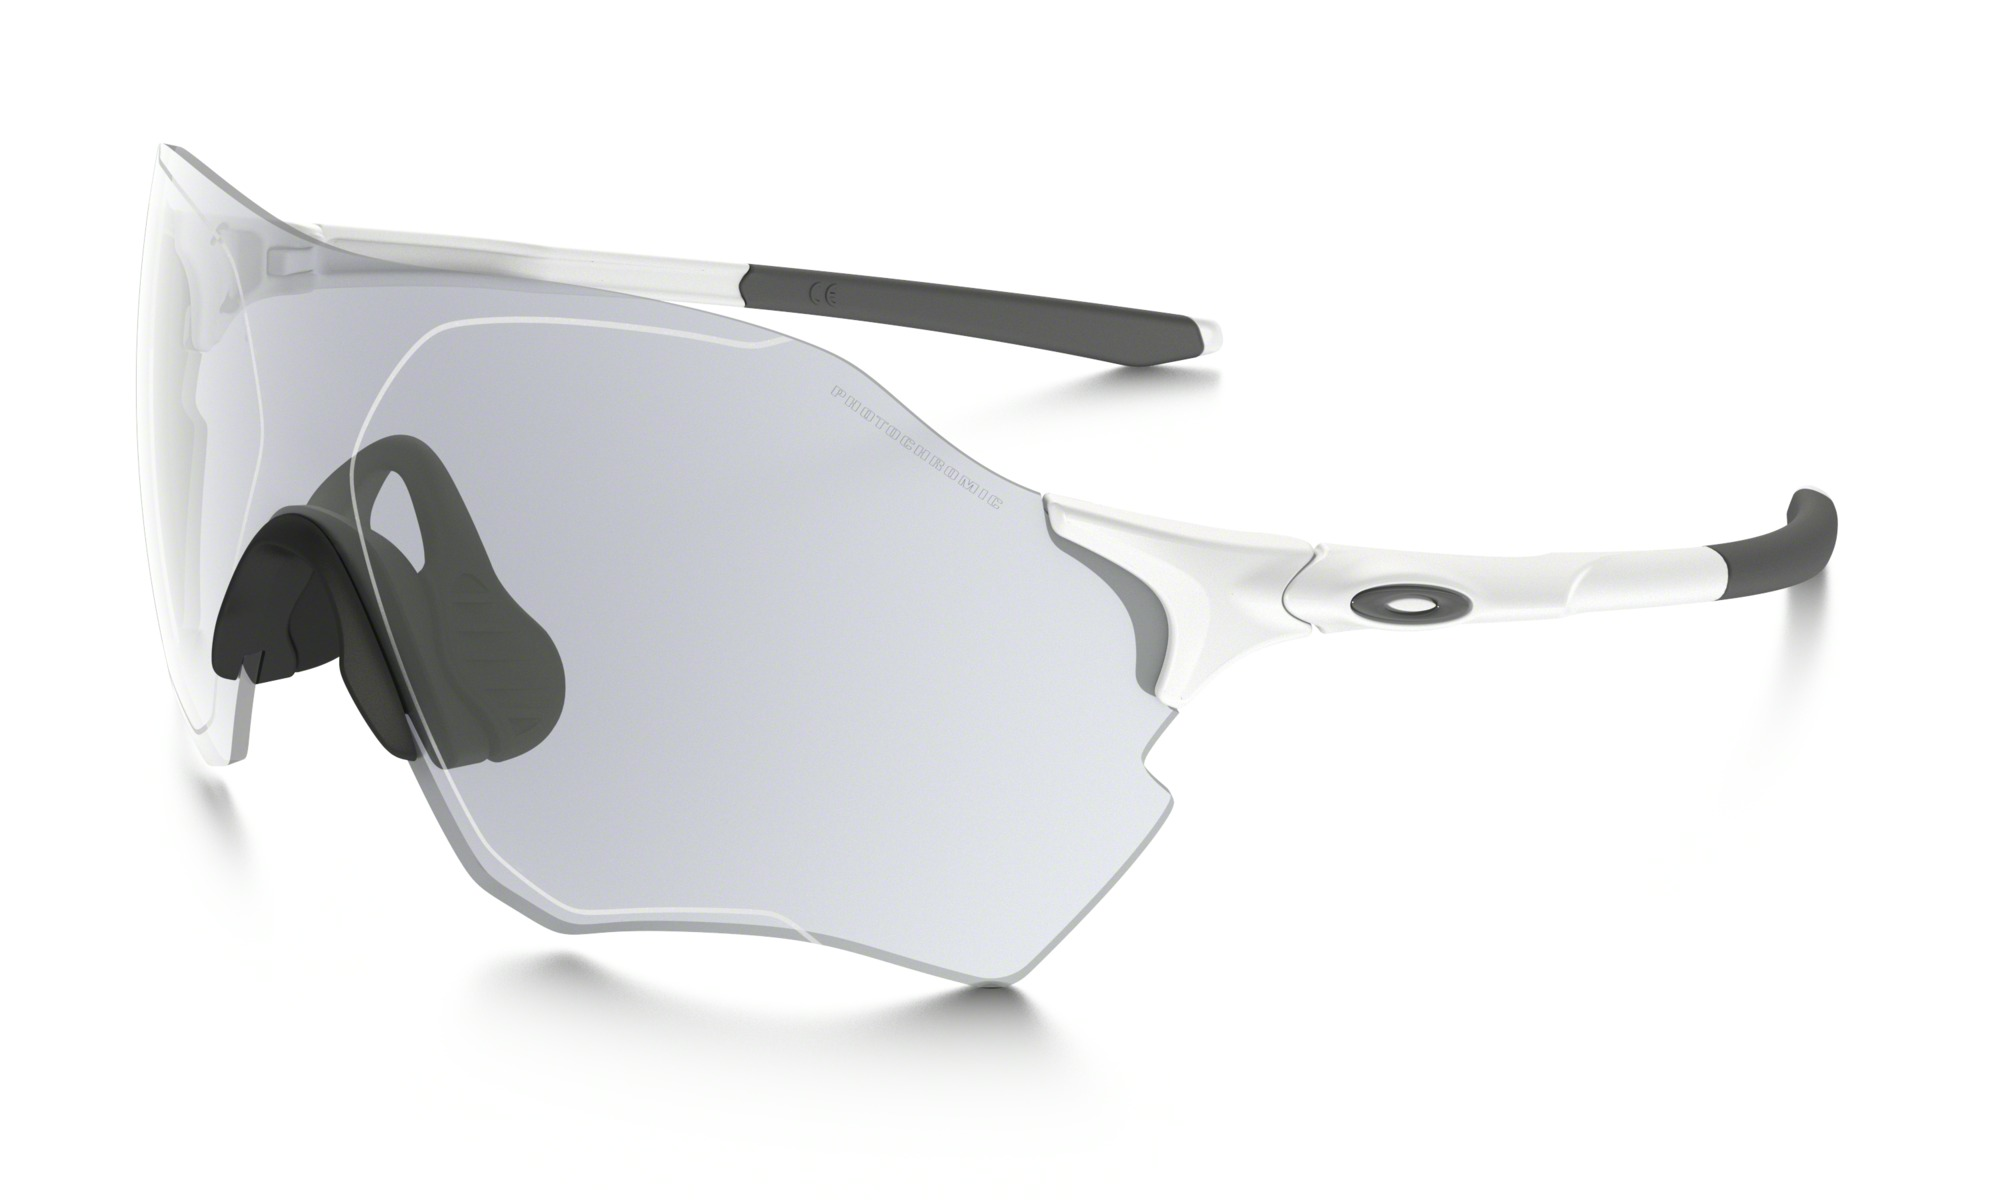 a3d318640ae Product Inquiry. Name  . Email  . Phone  . Subject OAKLEY EVZERO RANGE  MATTE WHITE  CLEAR BLACK IRIDIUM PHOTOCROMIC